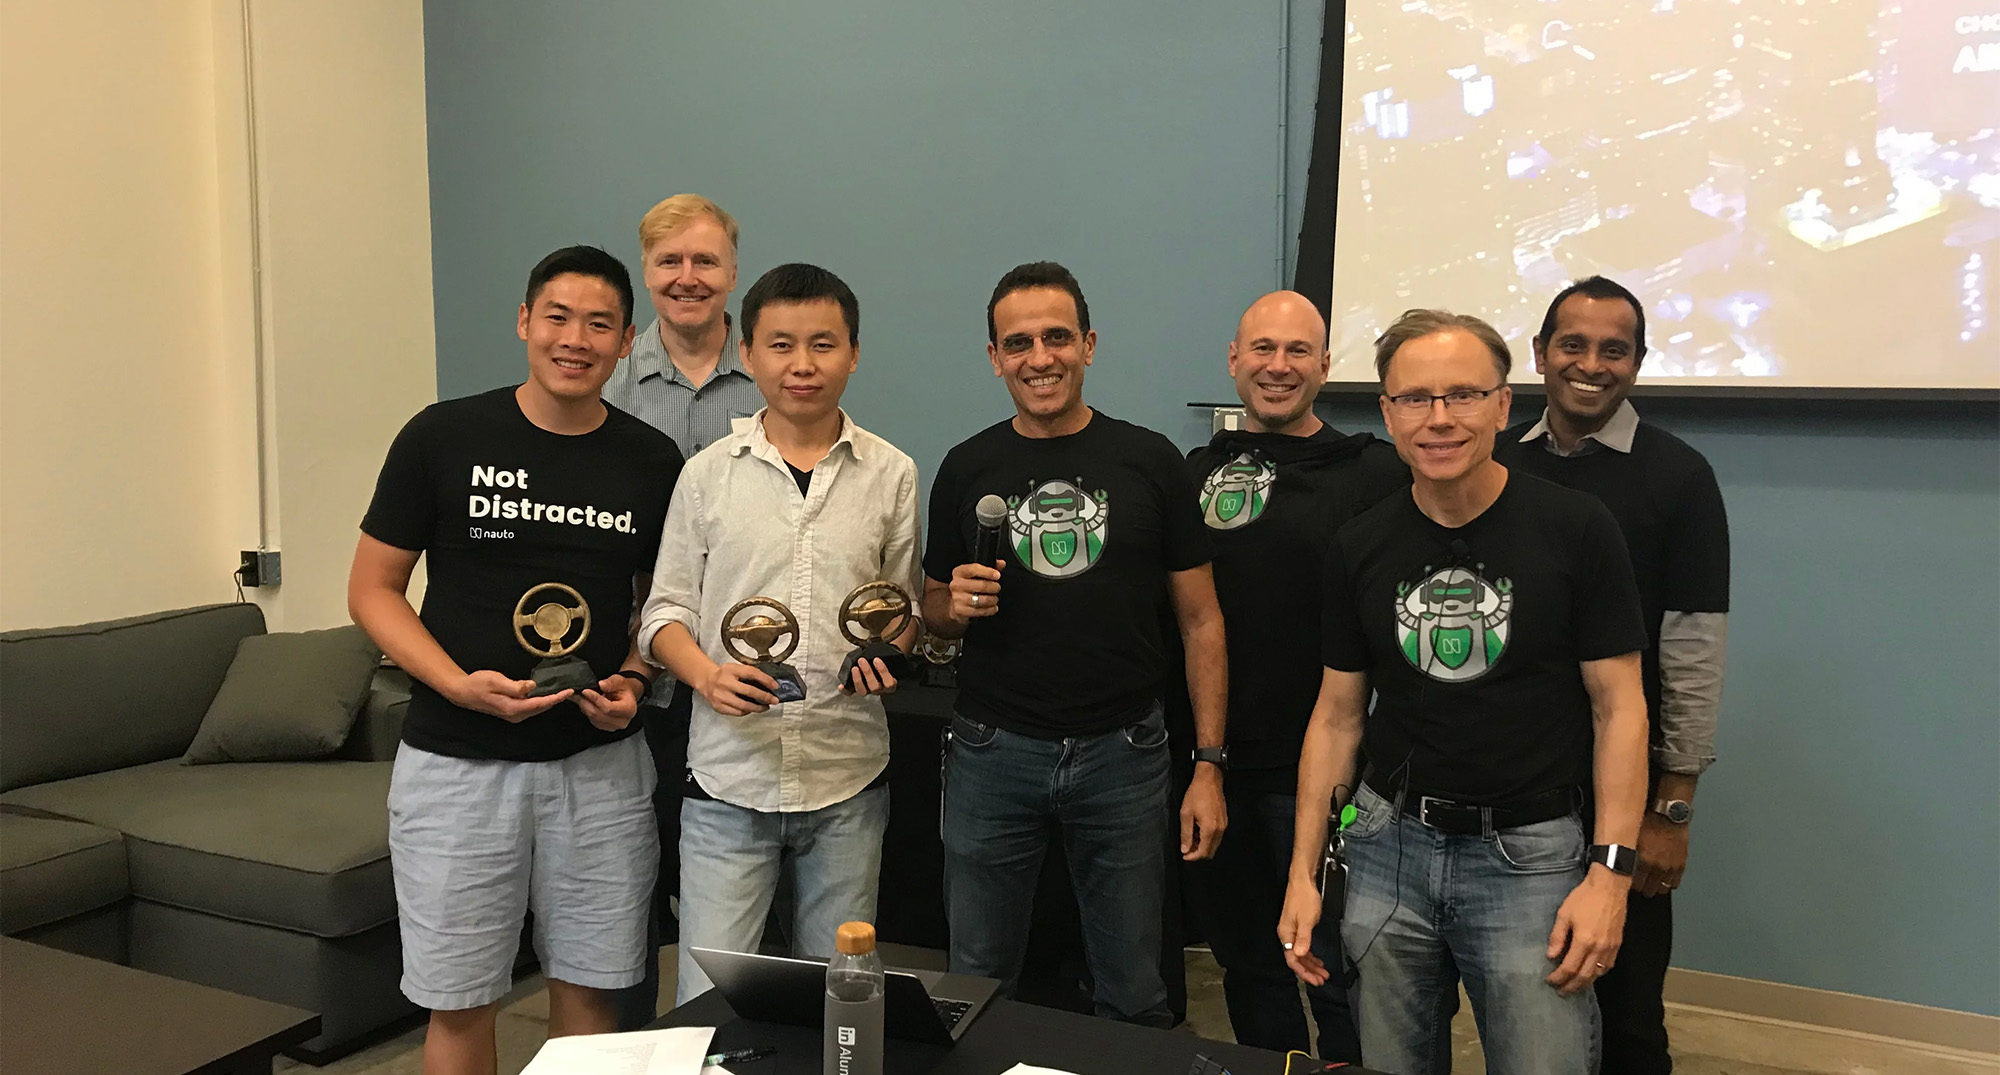 Take an Inside Look at Nauto's First Hackathon!